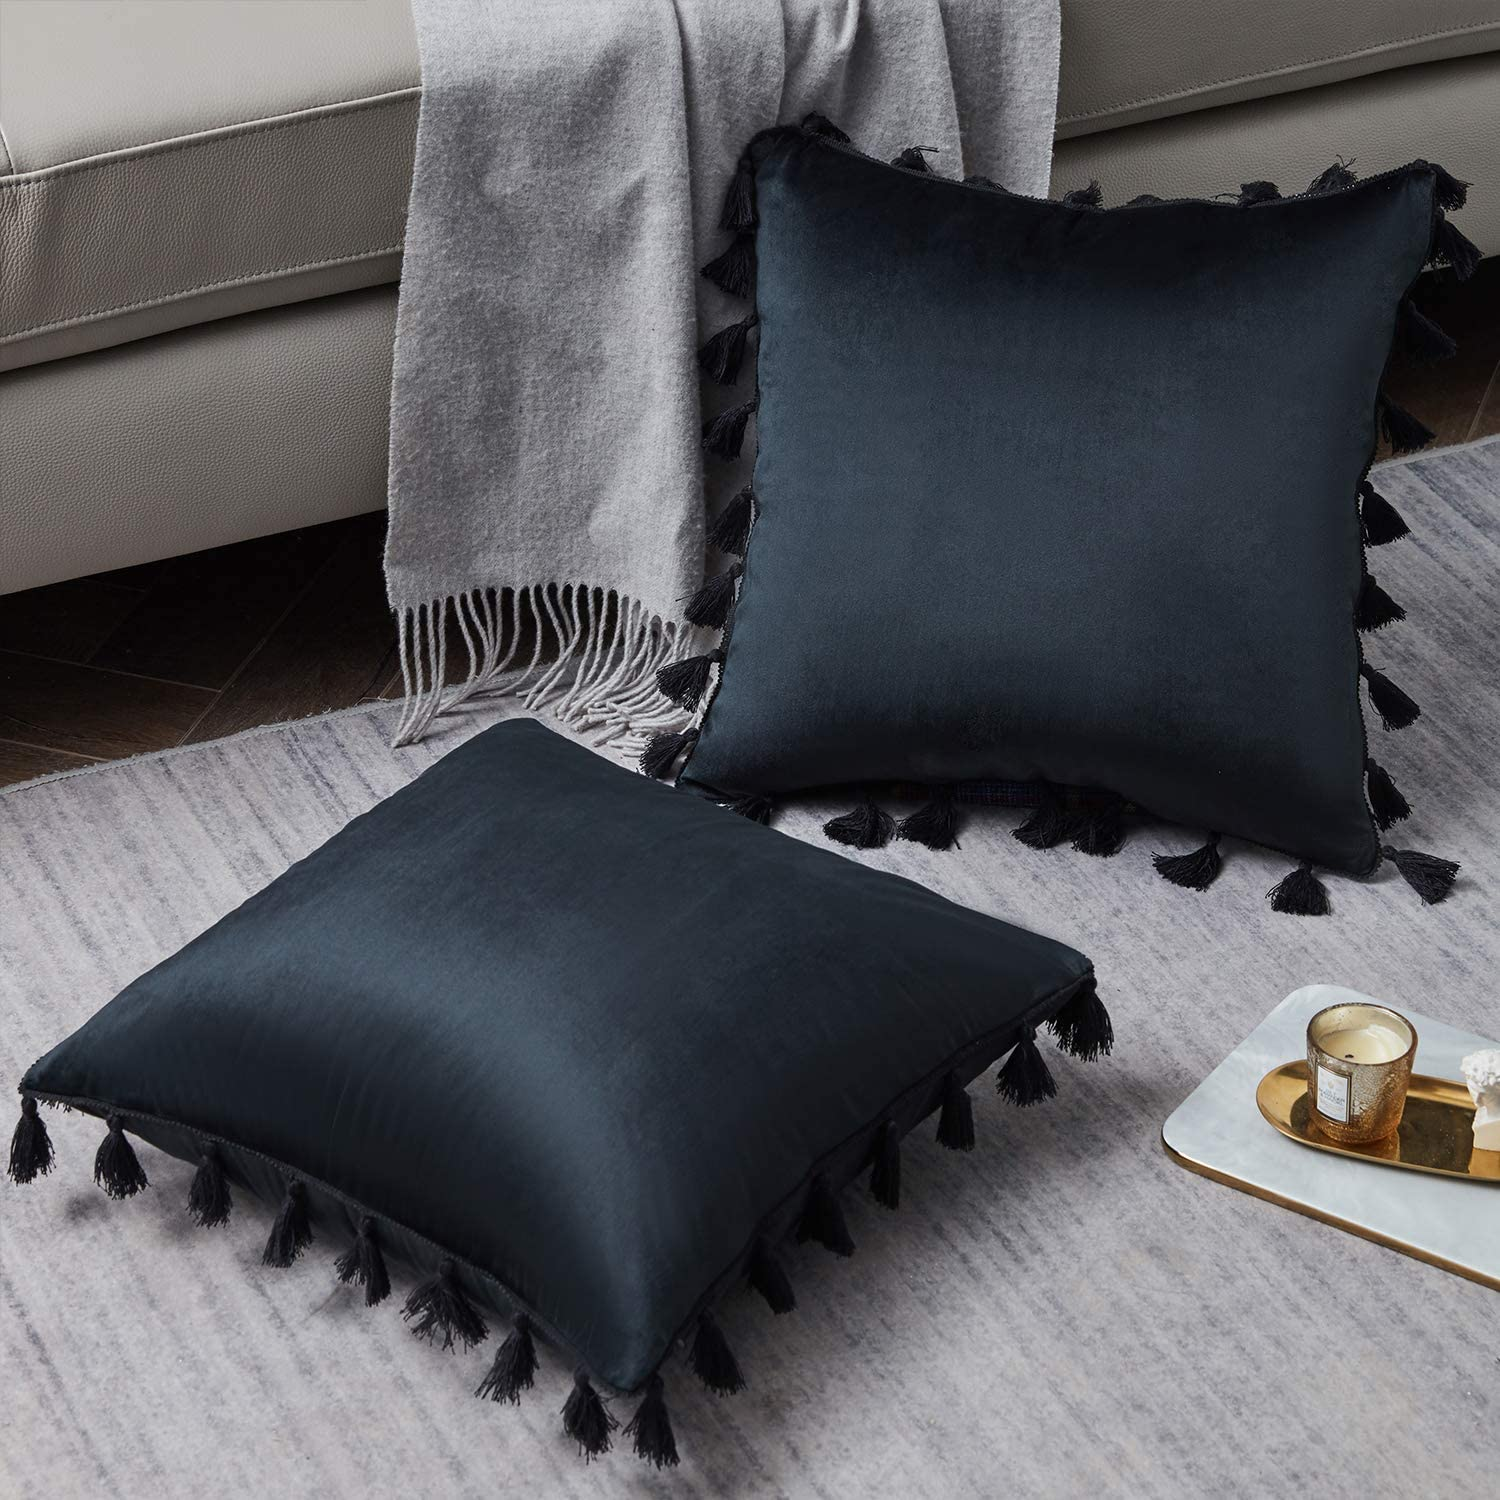 Bed Navy Blue 18 x 18 Inch Sofa Solid Cushion Case for Couch WESTERN HOME WH Pack of 2 Boho Throw Pillows Decorative Throw Pillow Covers with Tassels Soft Square Velvet Pillowcase